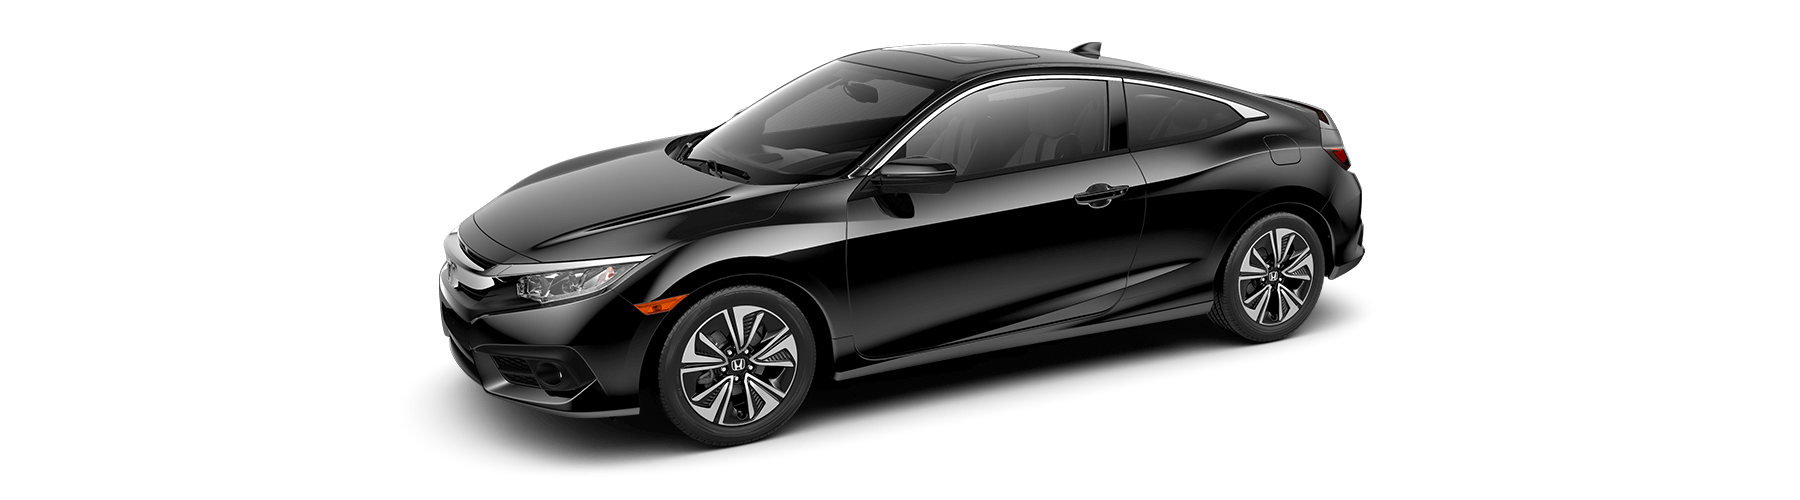 2018 Honda Civic Coupe Front Angle